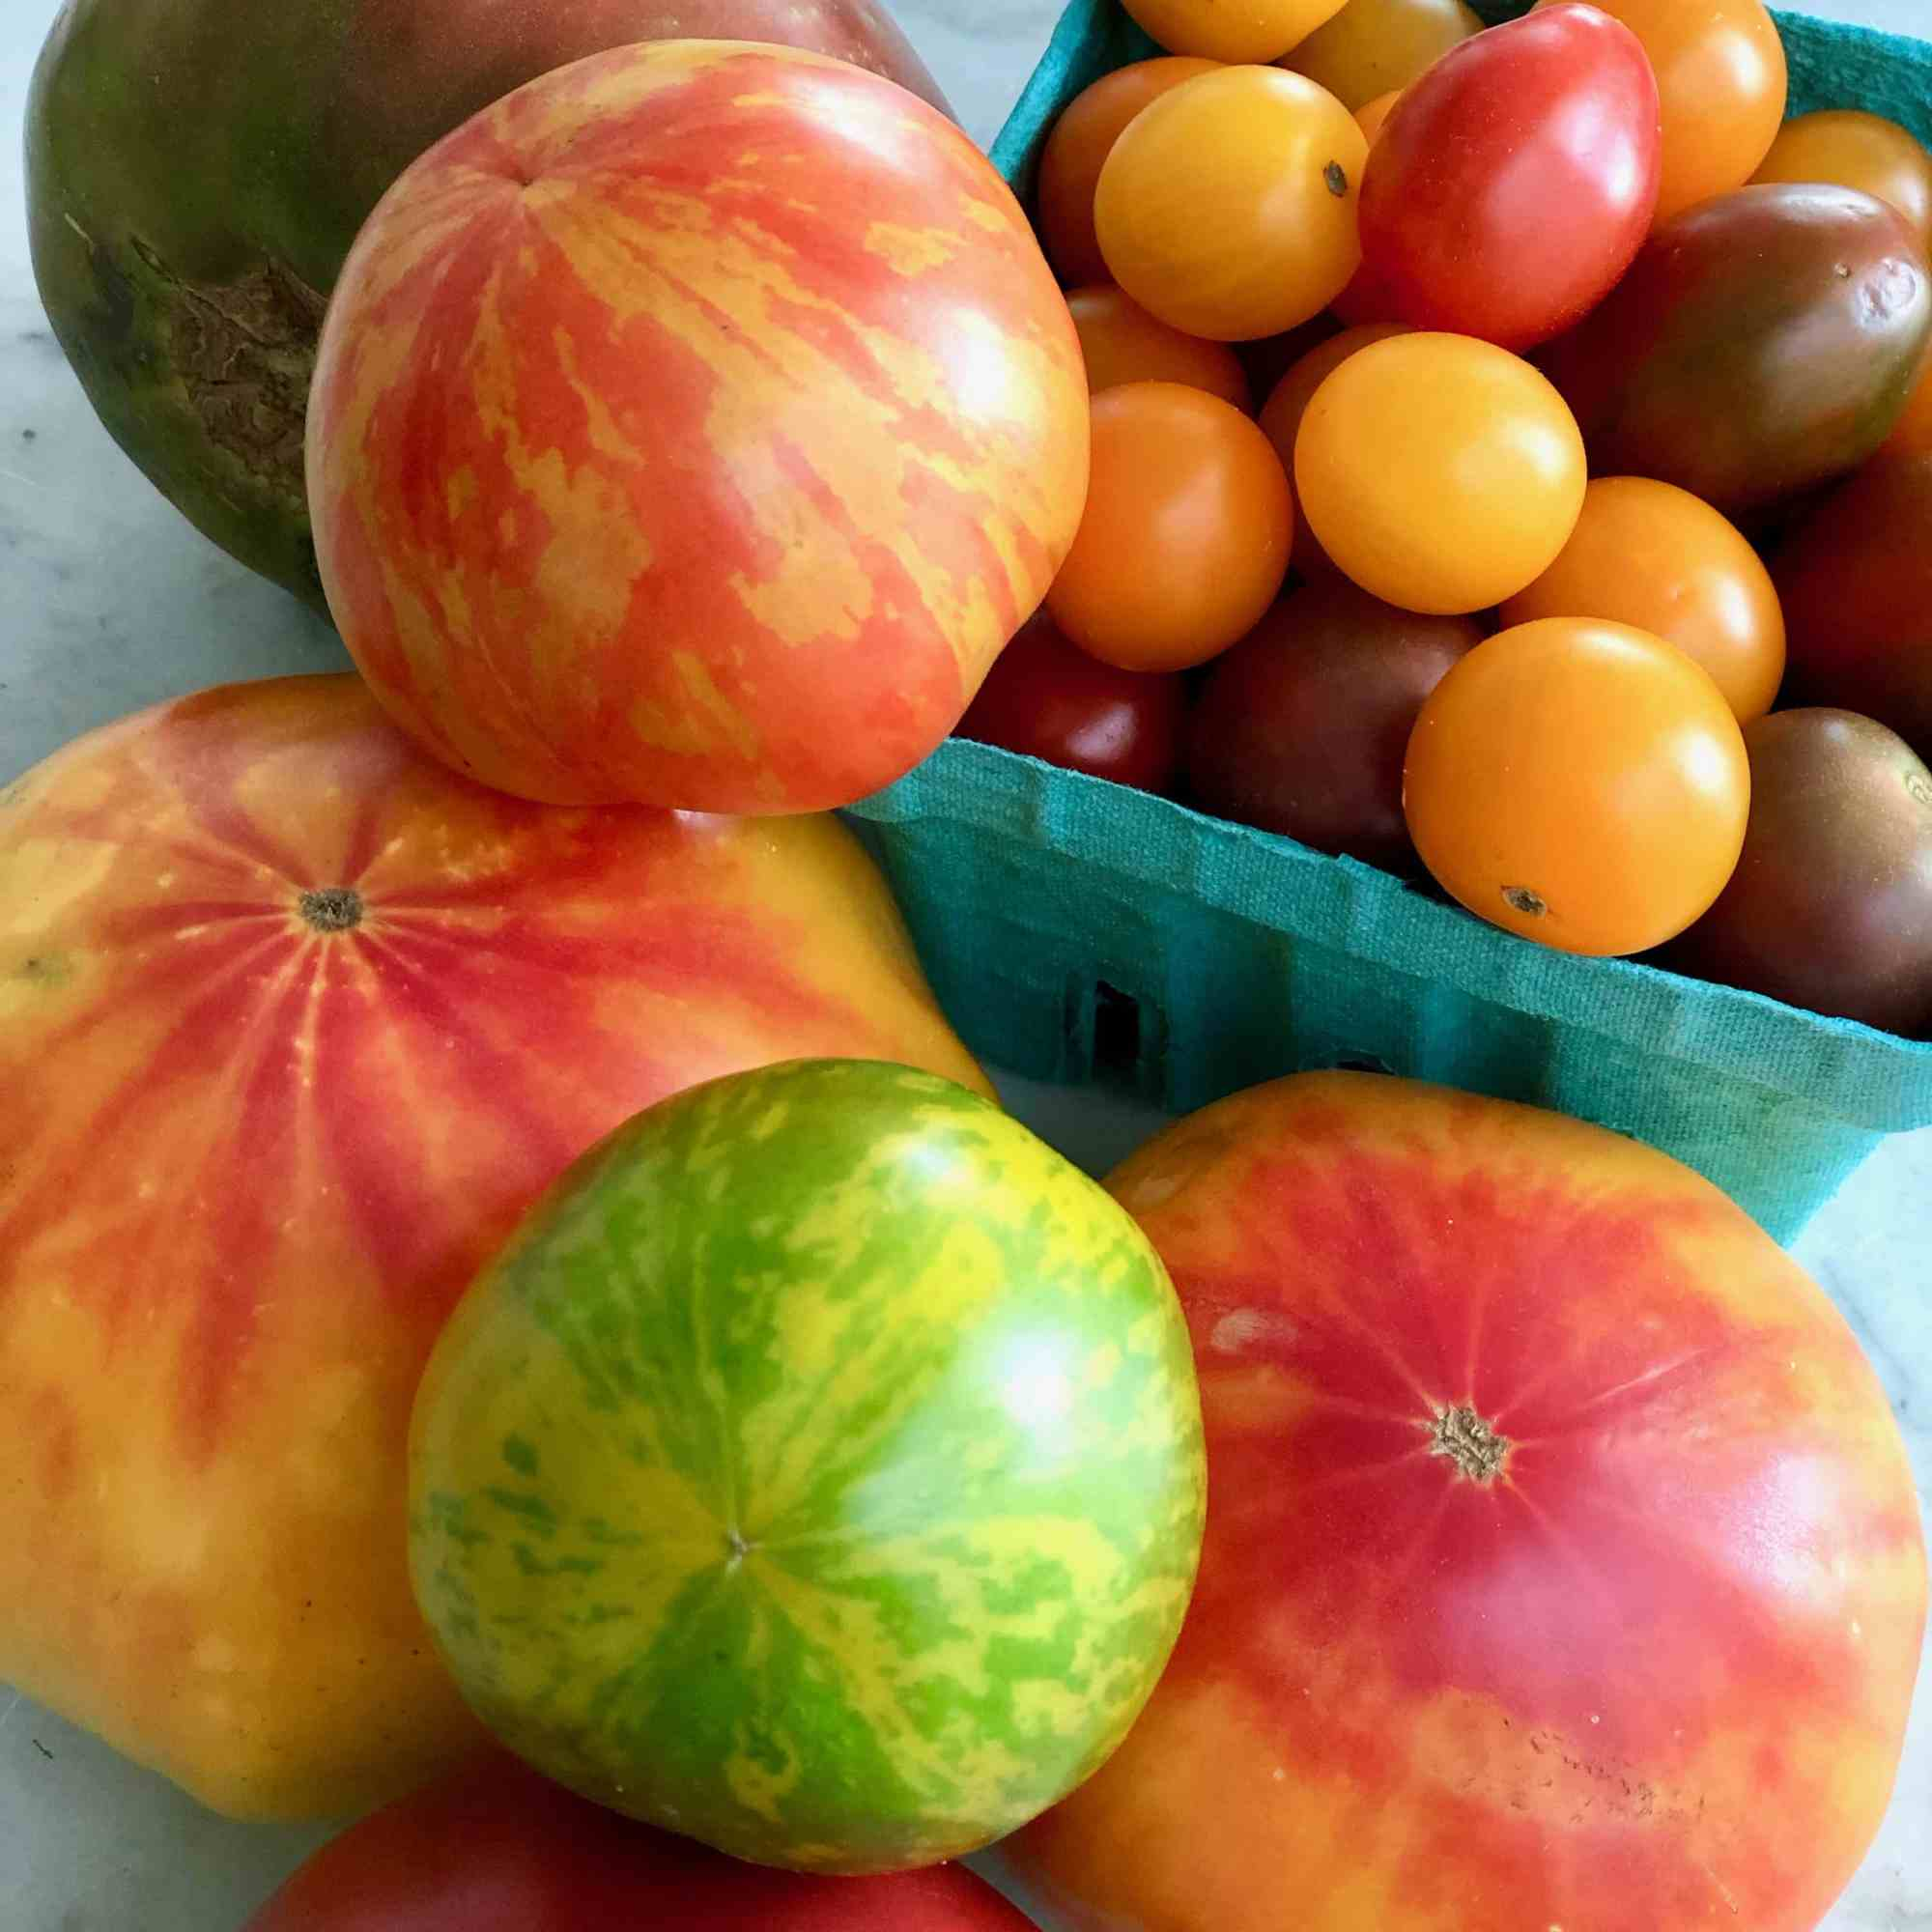 a variety of heirloom tomatoes from the Farmer's Market in a blue box